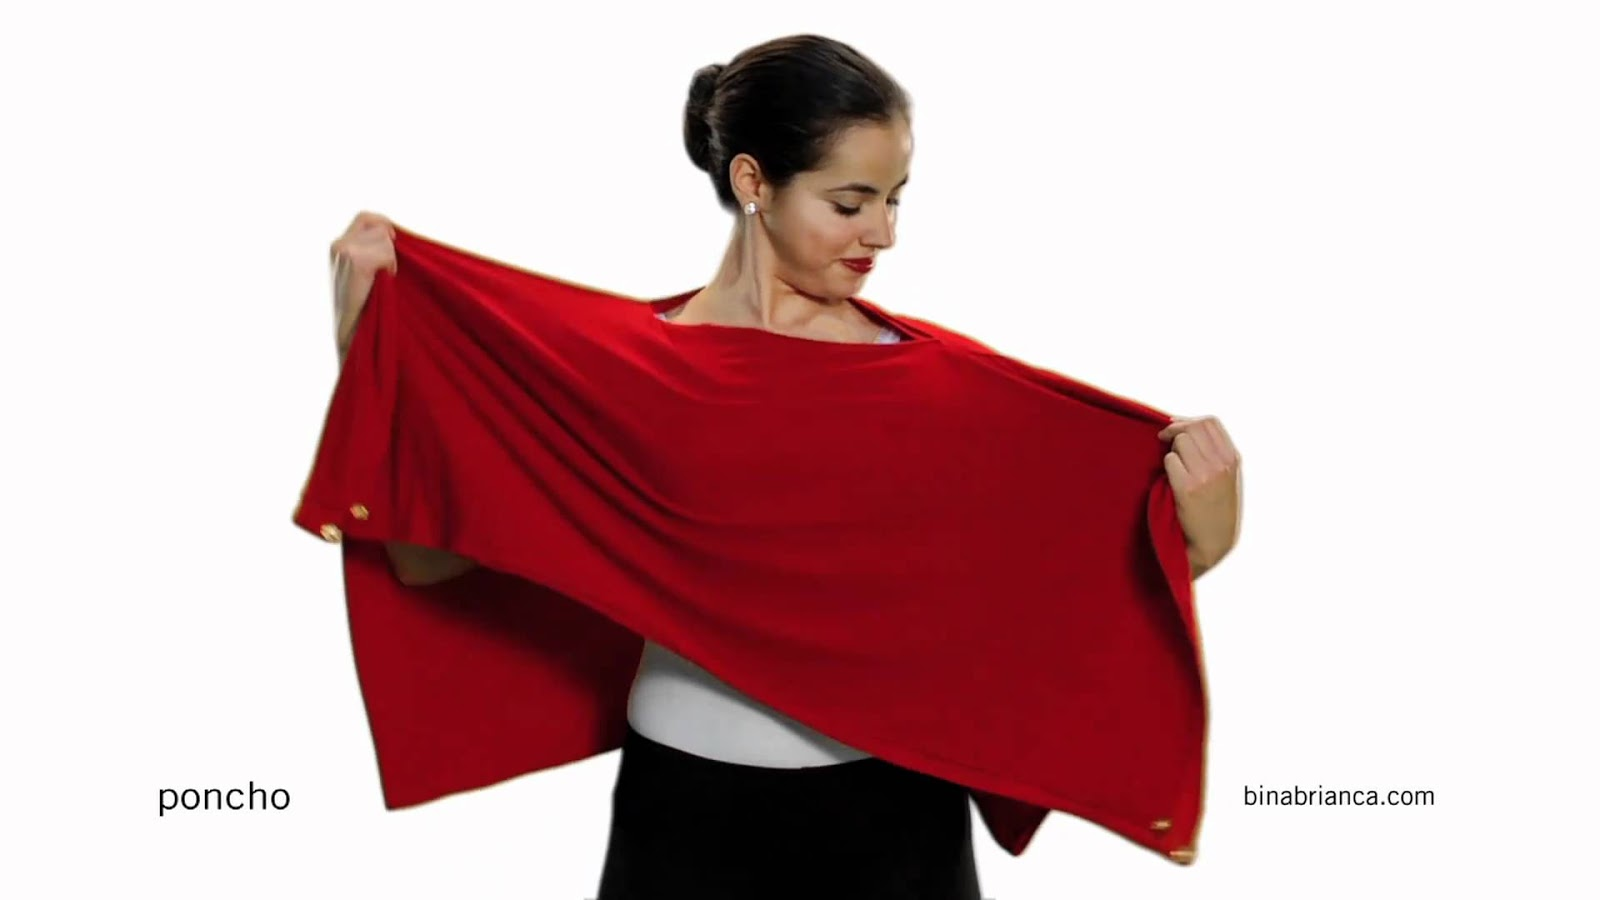 Poncho Bina Brianca. Transformable